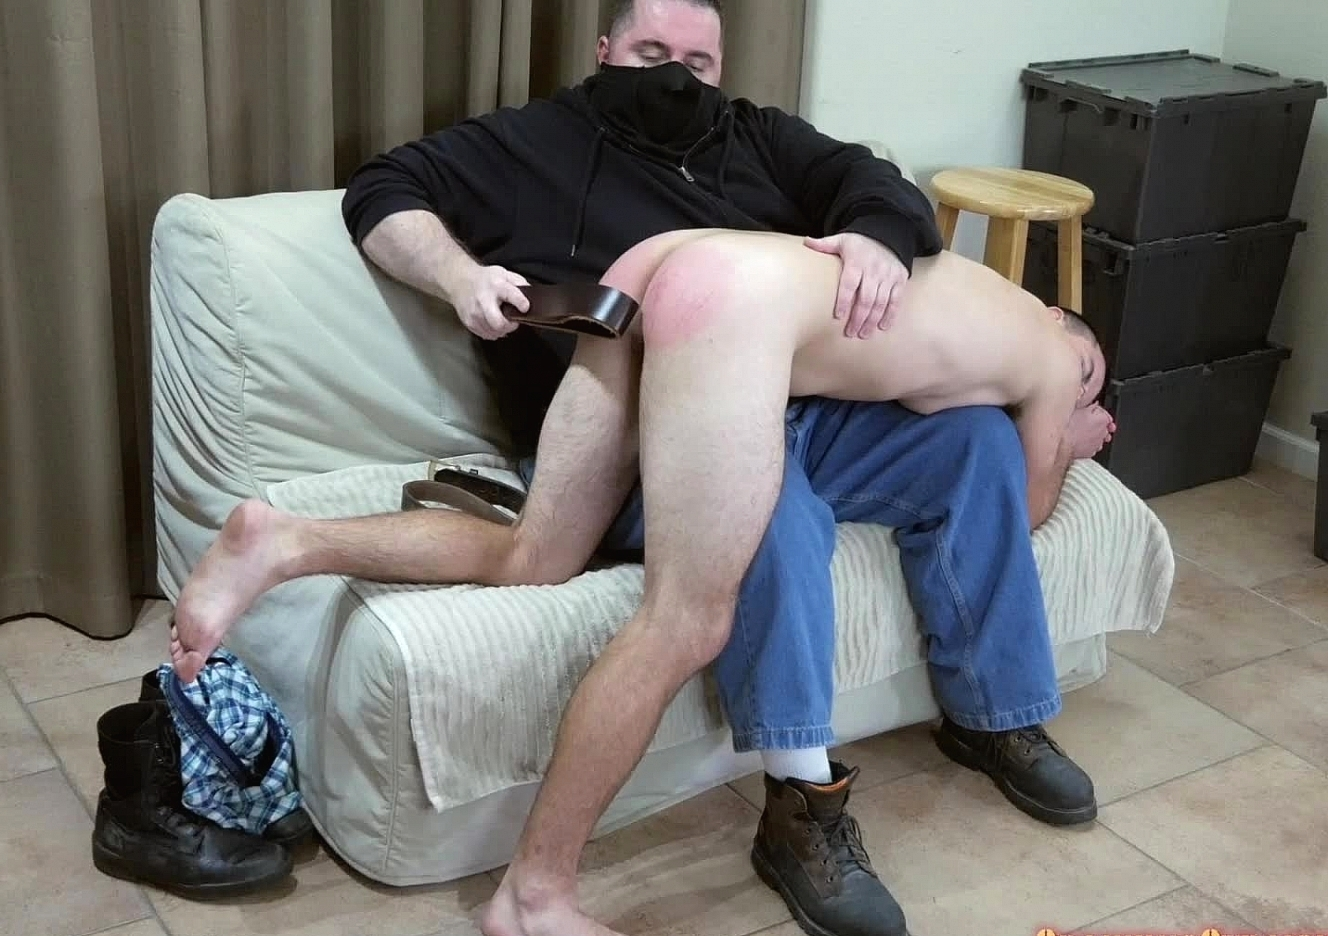 content/161118101-glenns-first-spanking/0.jpg